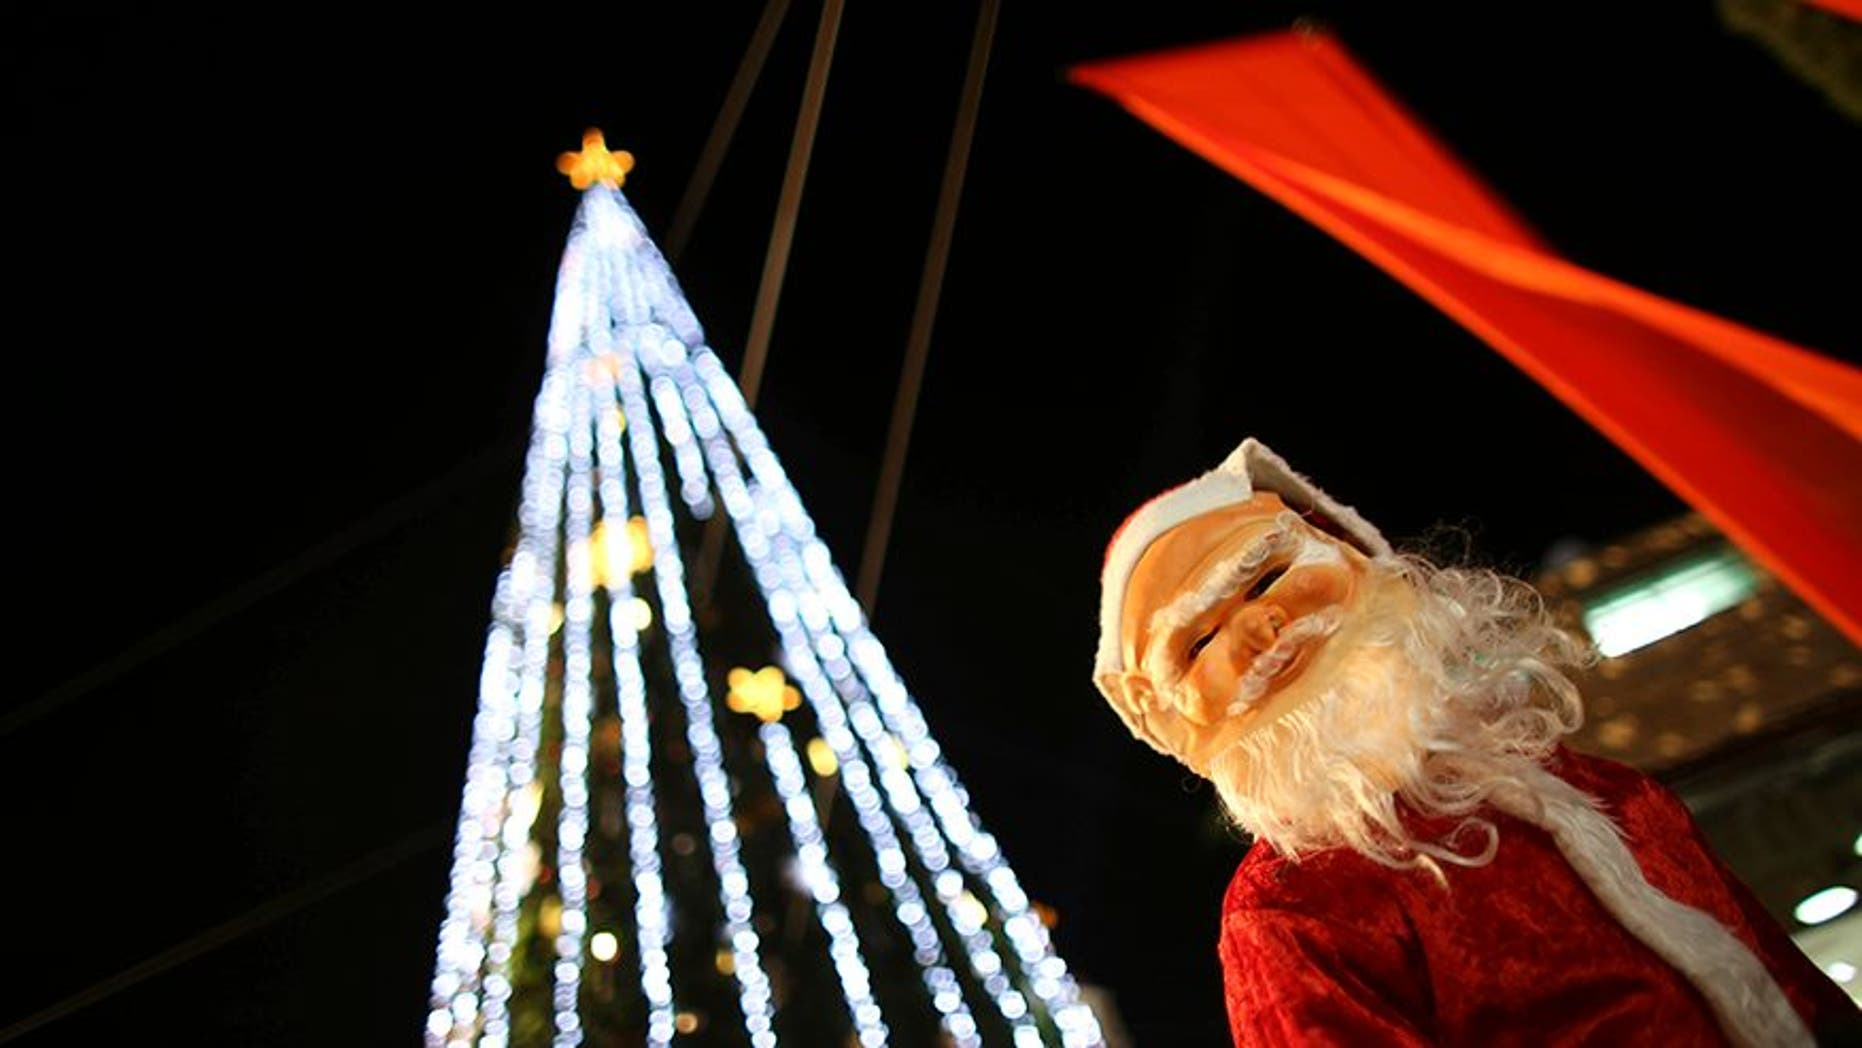 d88d8e7516 A boy wearing a Santa Claus costume attends a Christmas tree lighting  ceremony in the northern